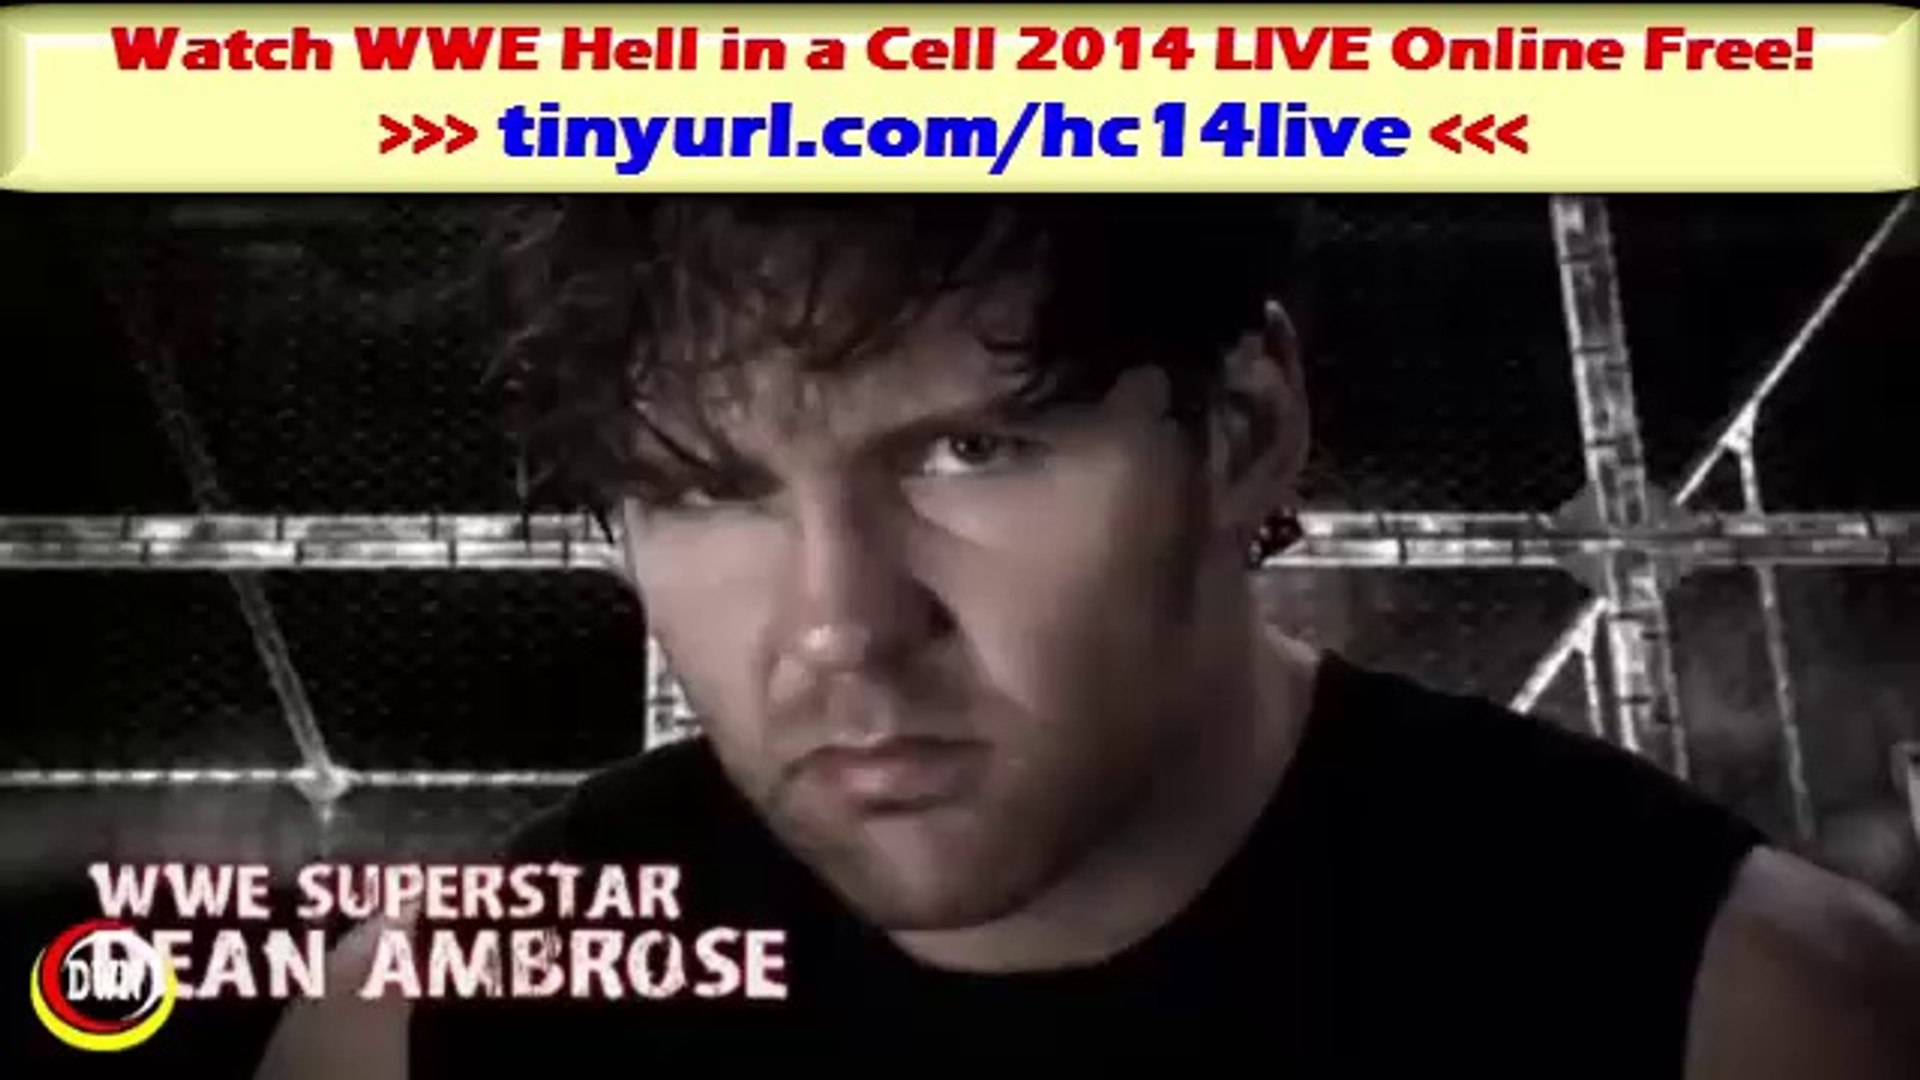 Watch WWE Hell in a Cell 2014 LIVE Online Free!